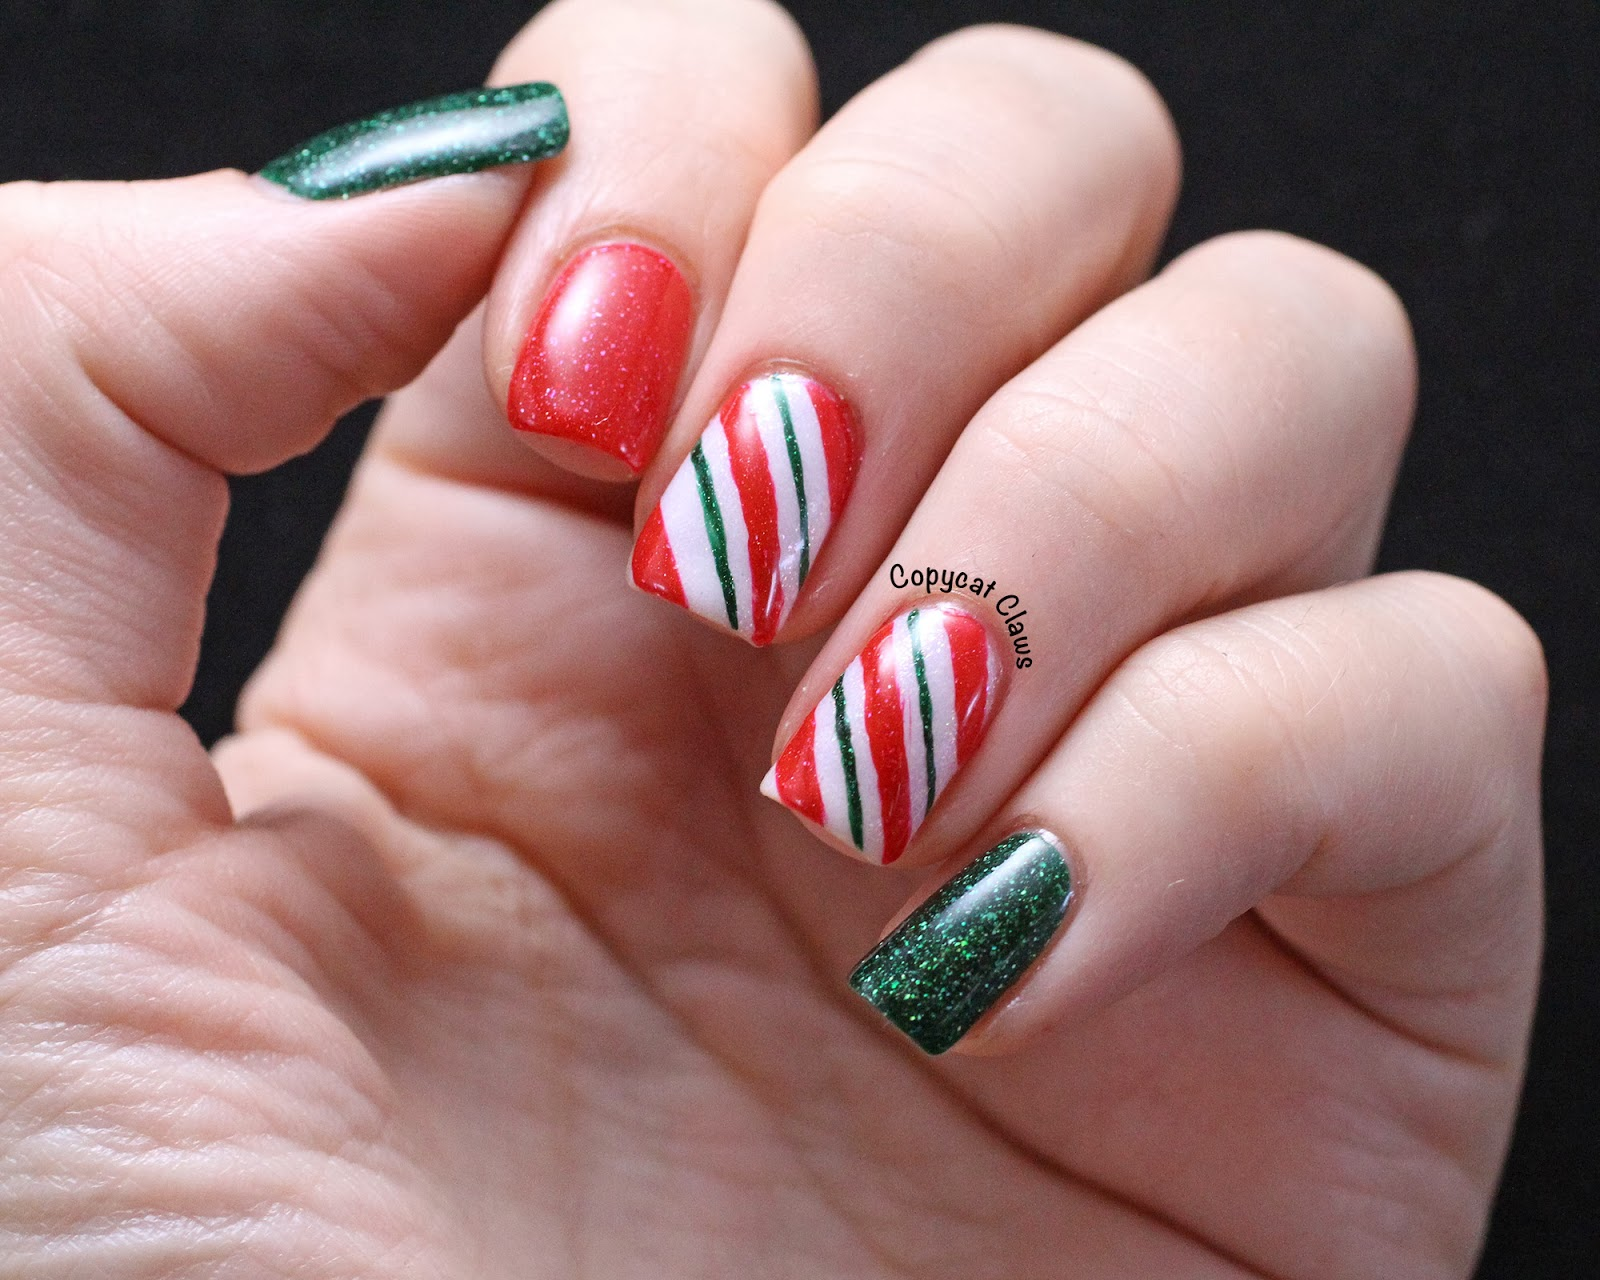 Copycat claws picture polish candy cane nail art i did not so bad on this hand if i do say so myself right hand was not quite so great solutioingenieria Images